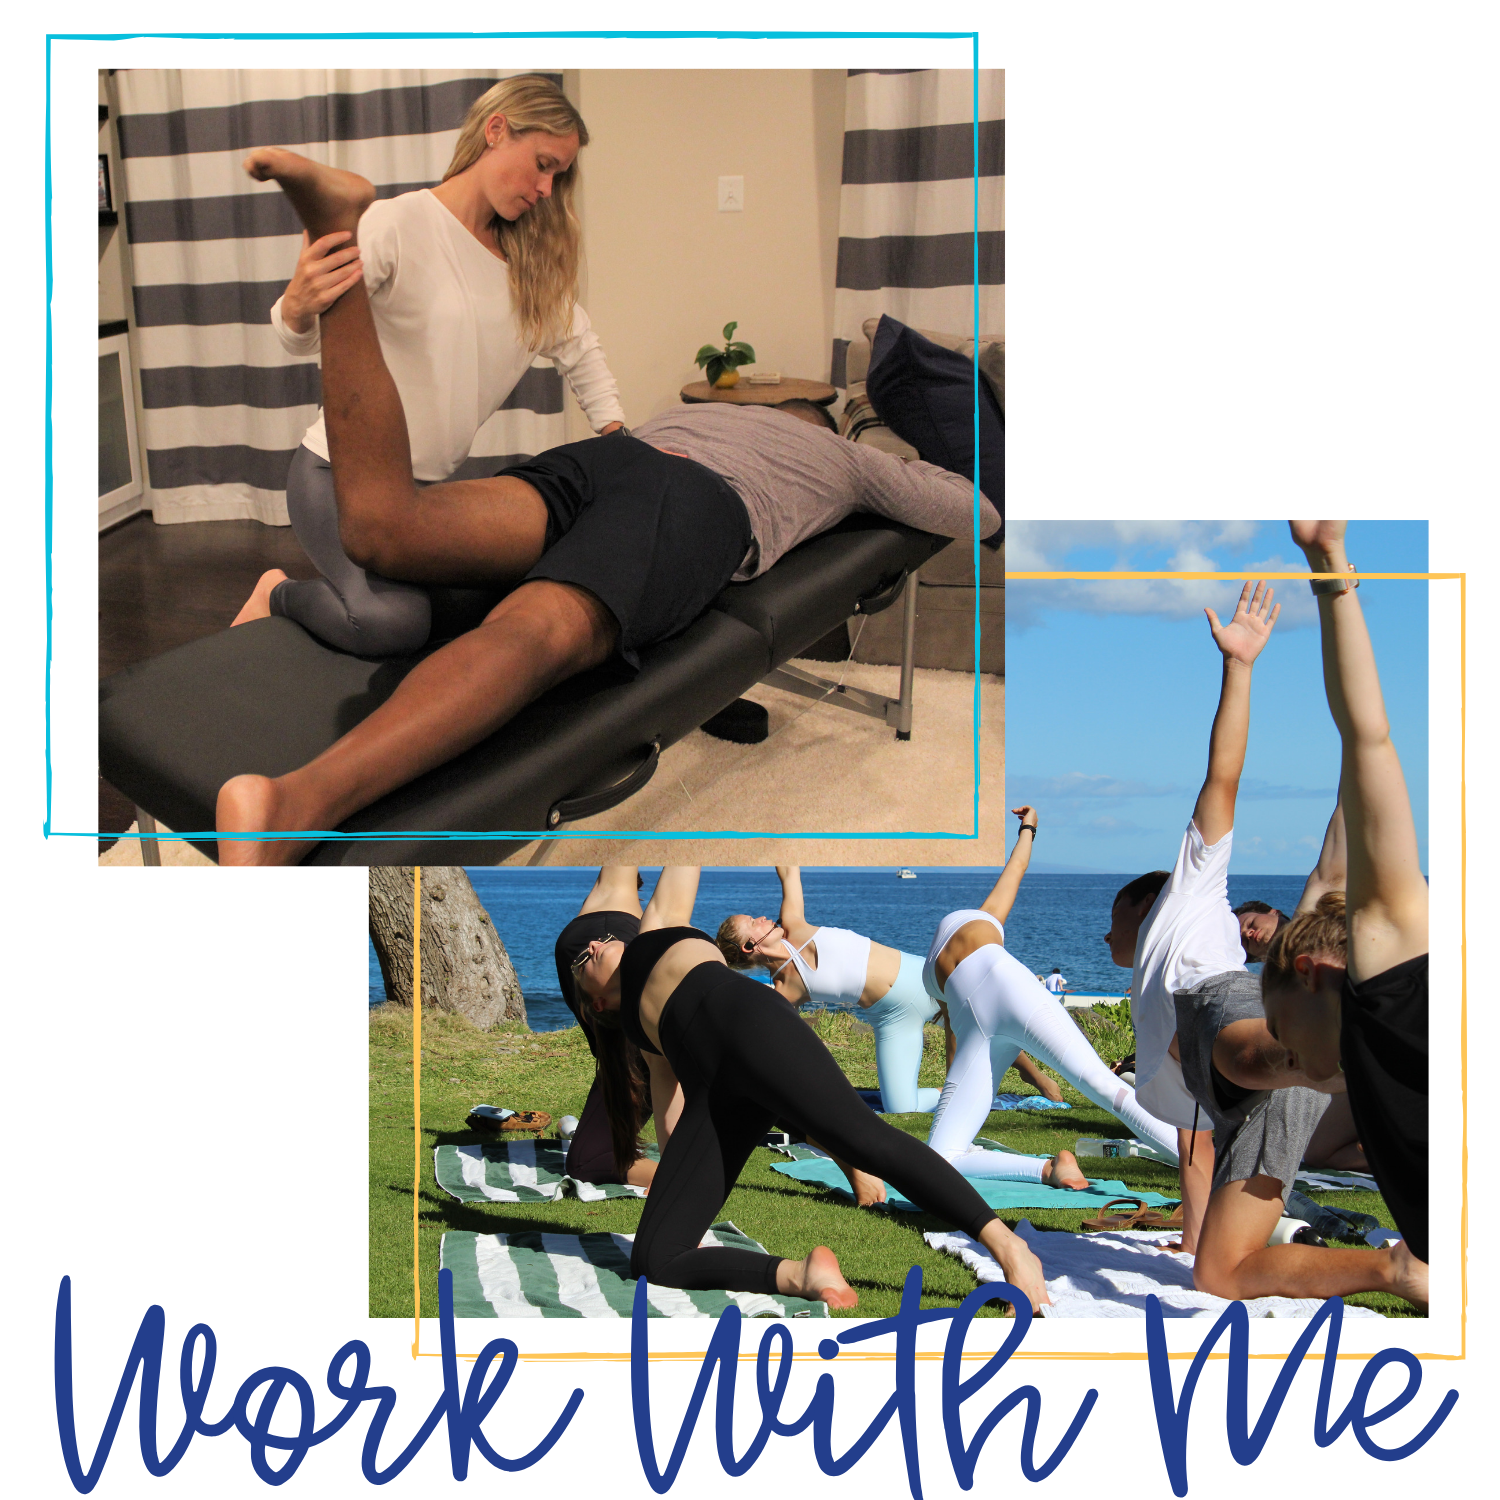 MSunn Yoga + Wellness | Melissa Oleson is a Yoga Instructor, Physical Therapist, & Holistic Health Coach Serving NW Washington DC, Montgomery County + Frederick + Clarksburg + New Market + Germantown + Gaithersburg + Urbana Maryland, and Northern Virginia including McClean + Tysons | Specializing in YOUnique Wellness + Online Nutrition Consultations | Corporate Wellness Programs